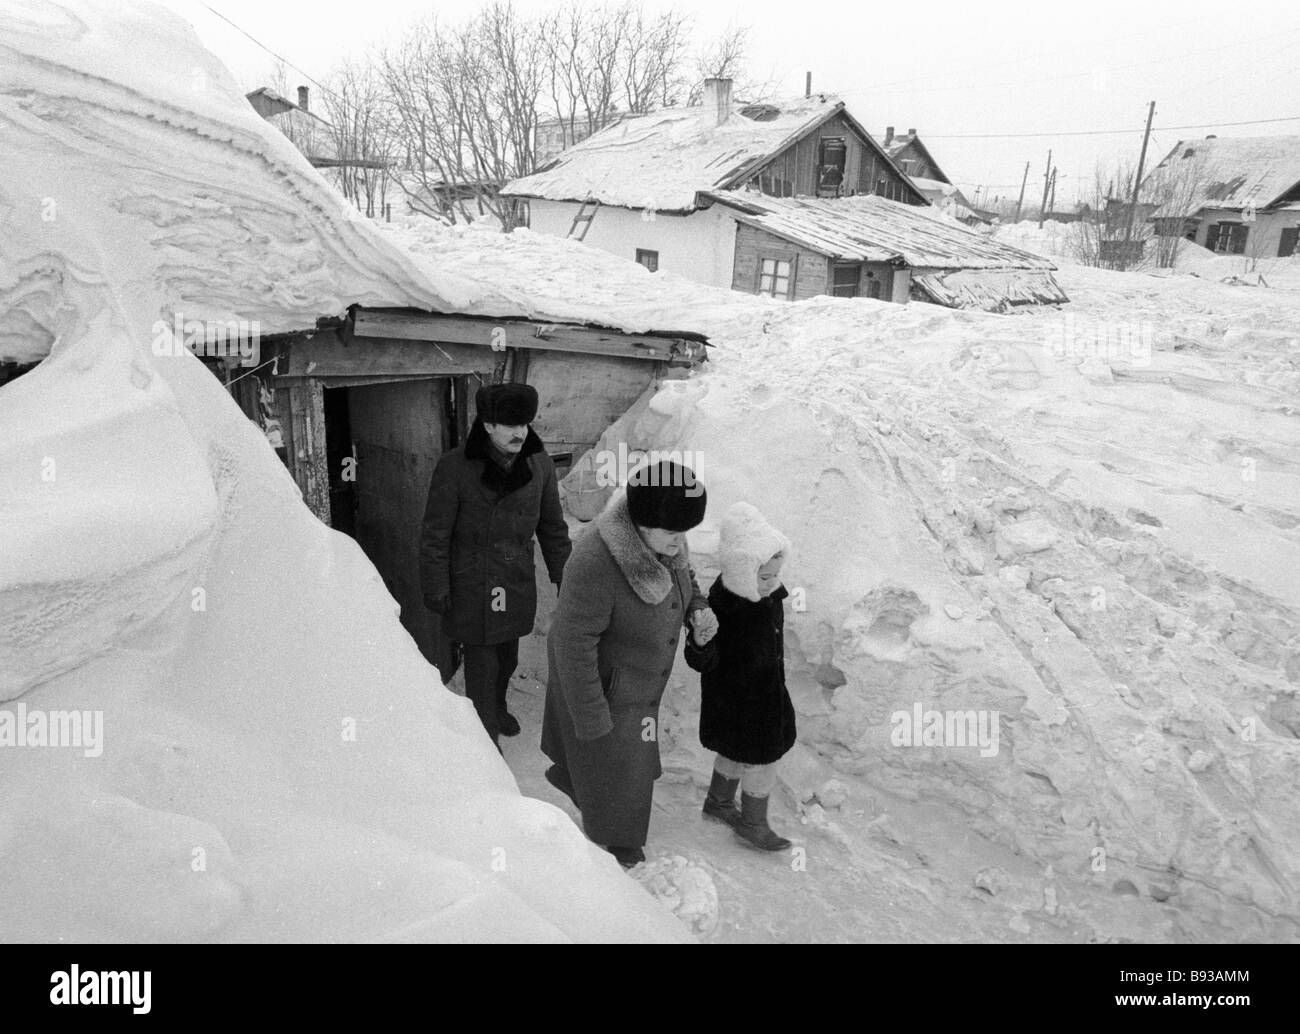 c19b4a00234d A miner family on the porch of their house smothered with snow stock image  jpg 1300x1034